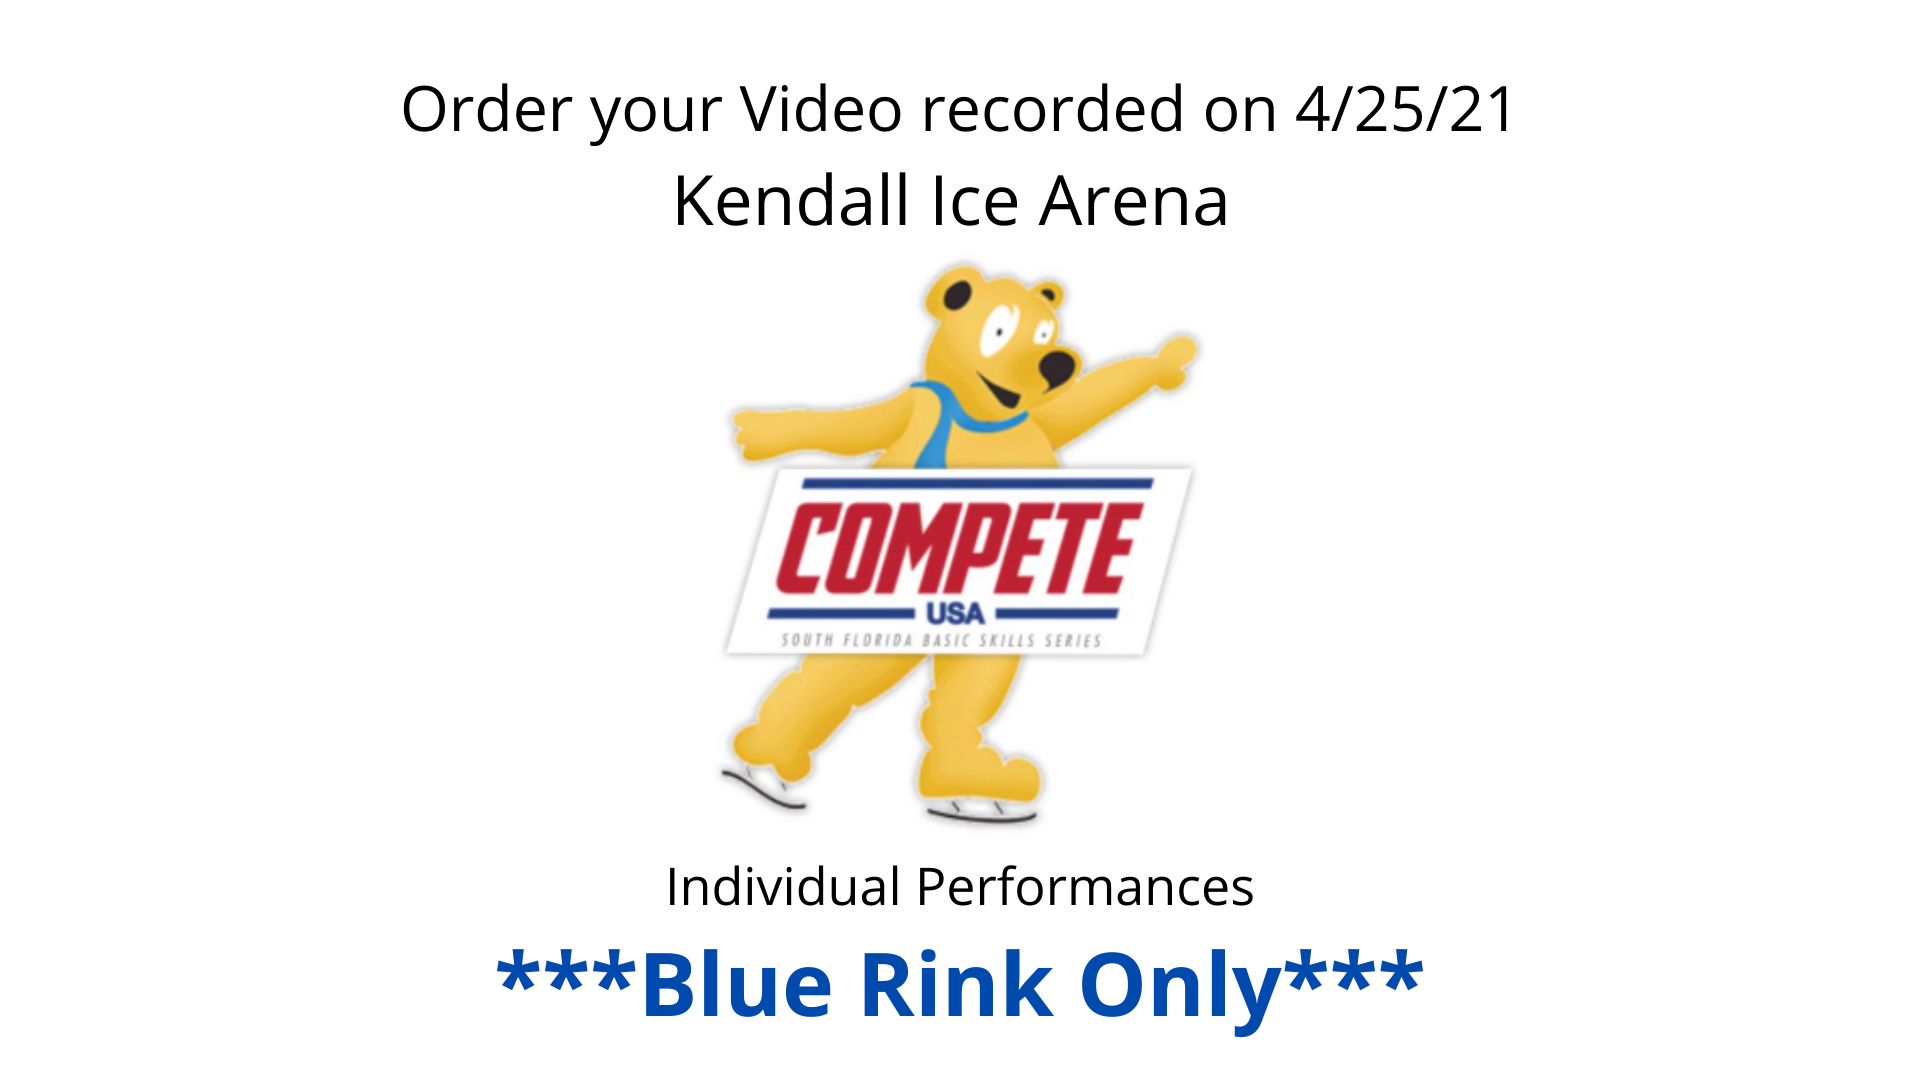 Order Your Video - Compete USA